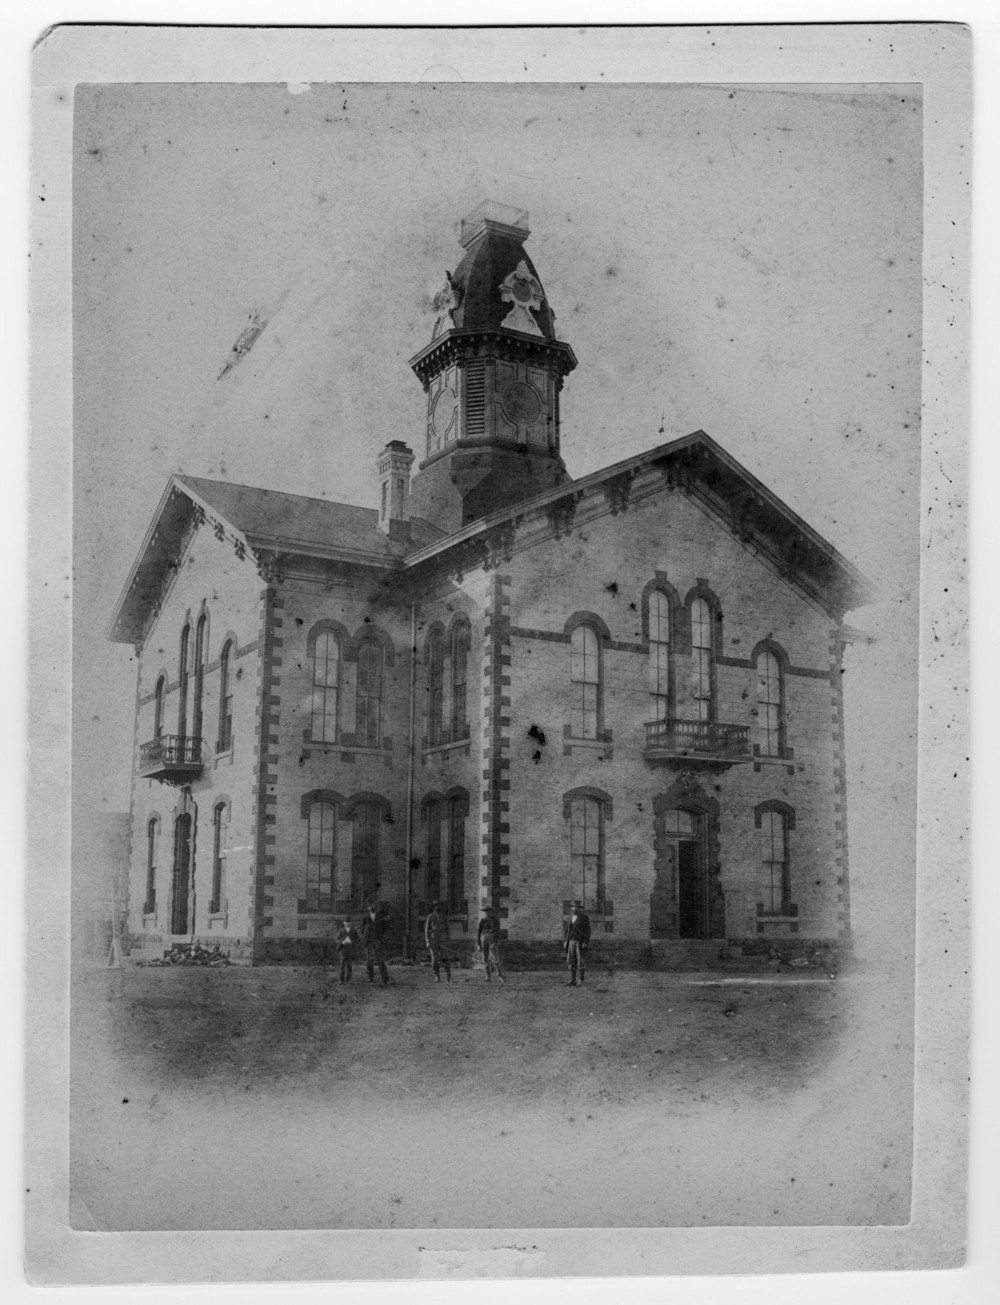 Denton's second courthouse, struck by lightning in 1894